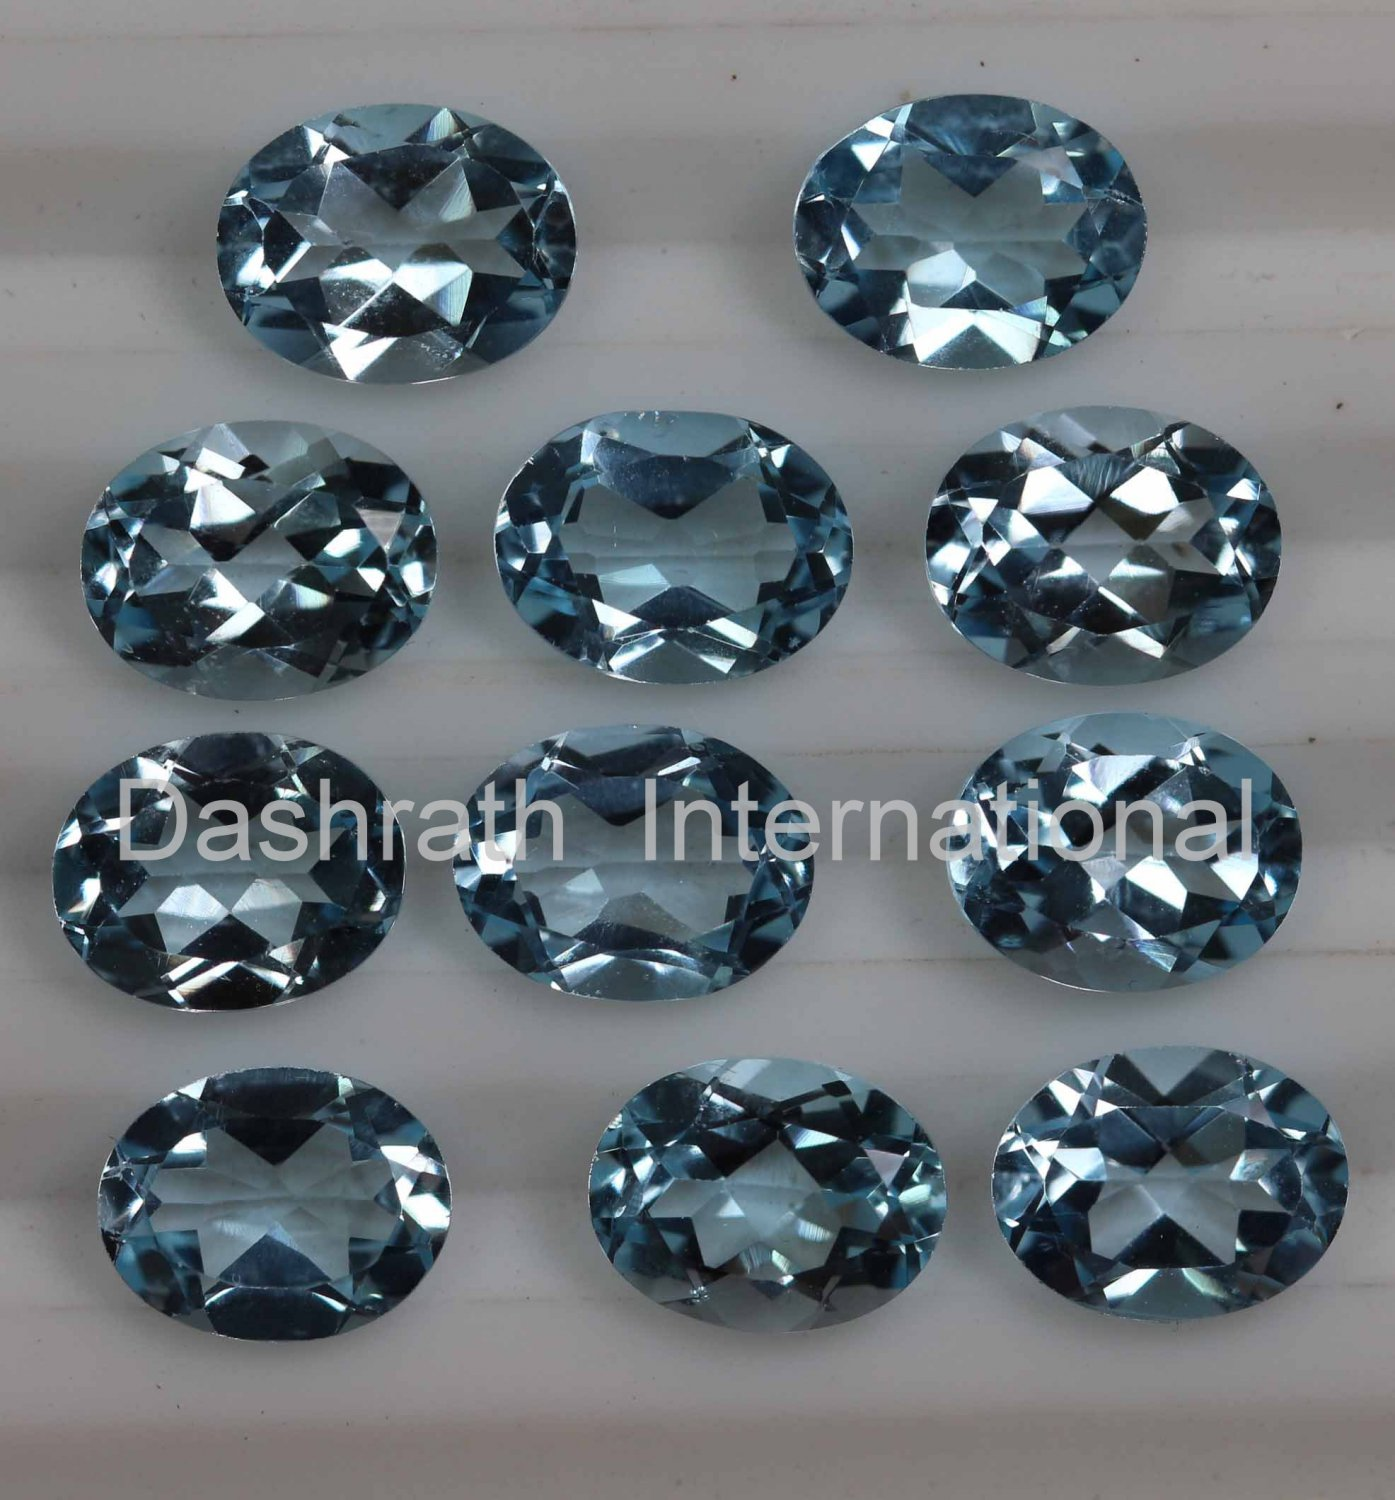 4x6mm  Natural Sky Blue Topaz Faceted Cut Oval  25 Pieces Lot  Top Quality Loose Gemstone